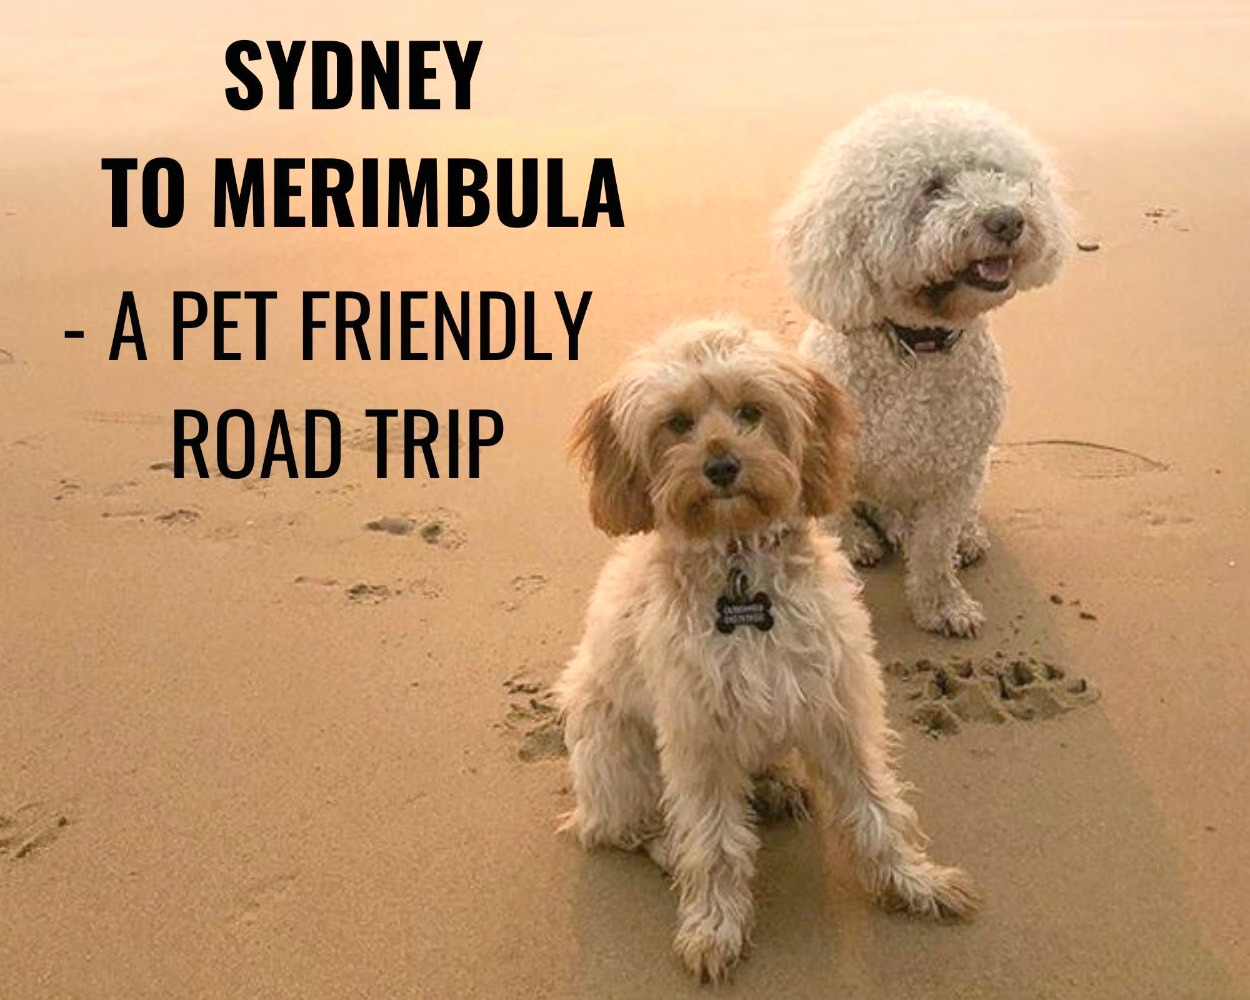 Sydney to Merimbula Pet Friendly Road Trip